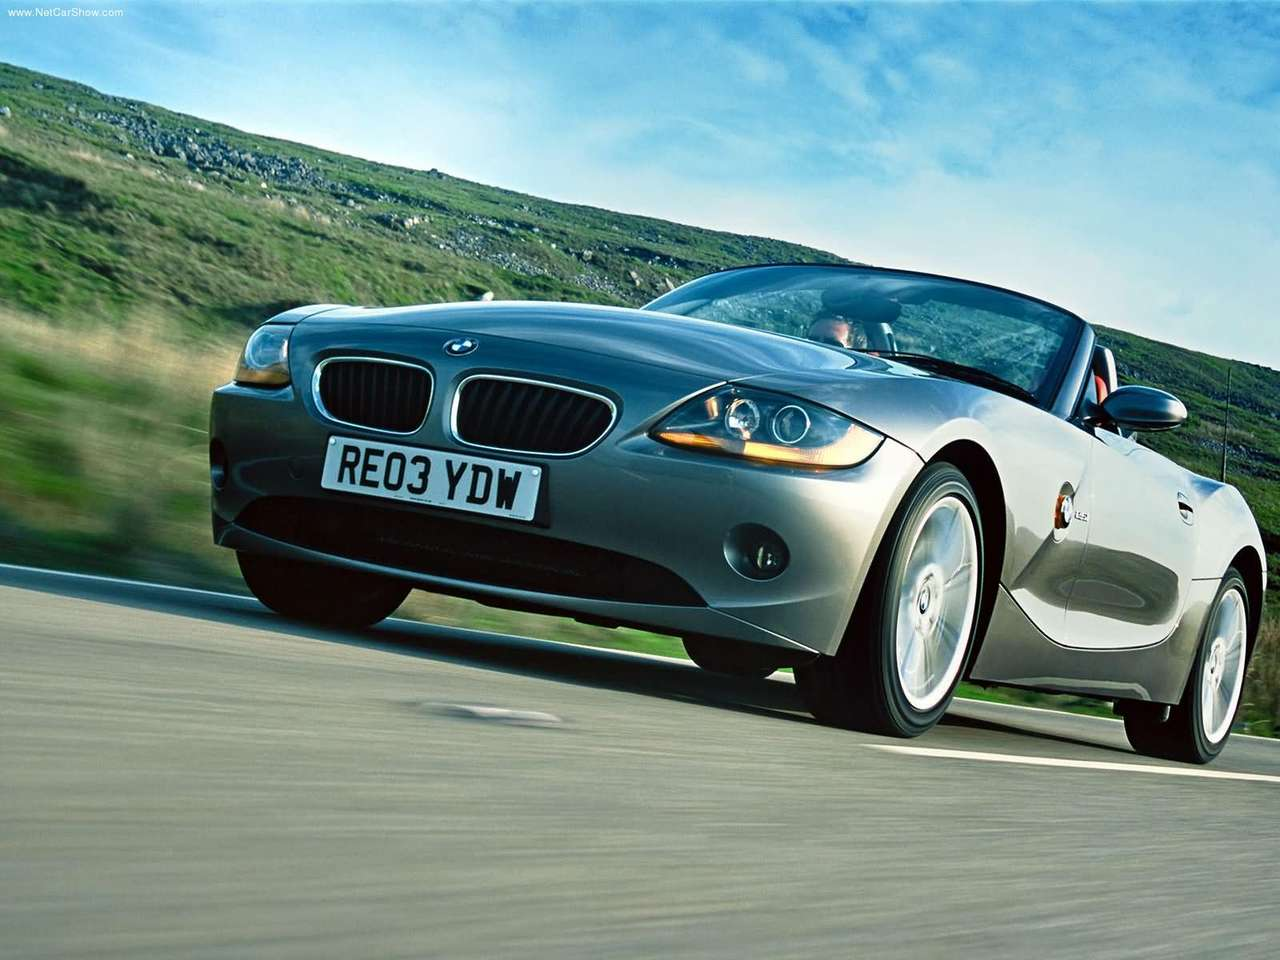 The Z4 Was Designed By Chris Bangle And Began The